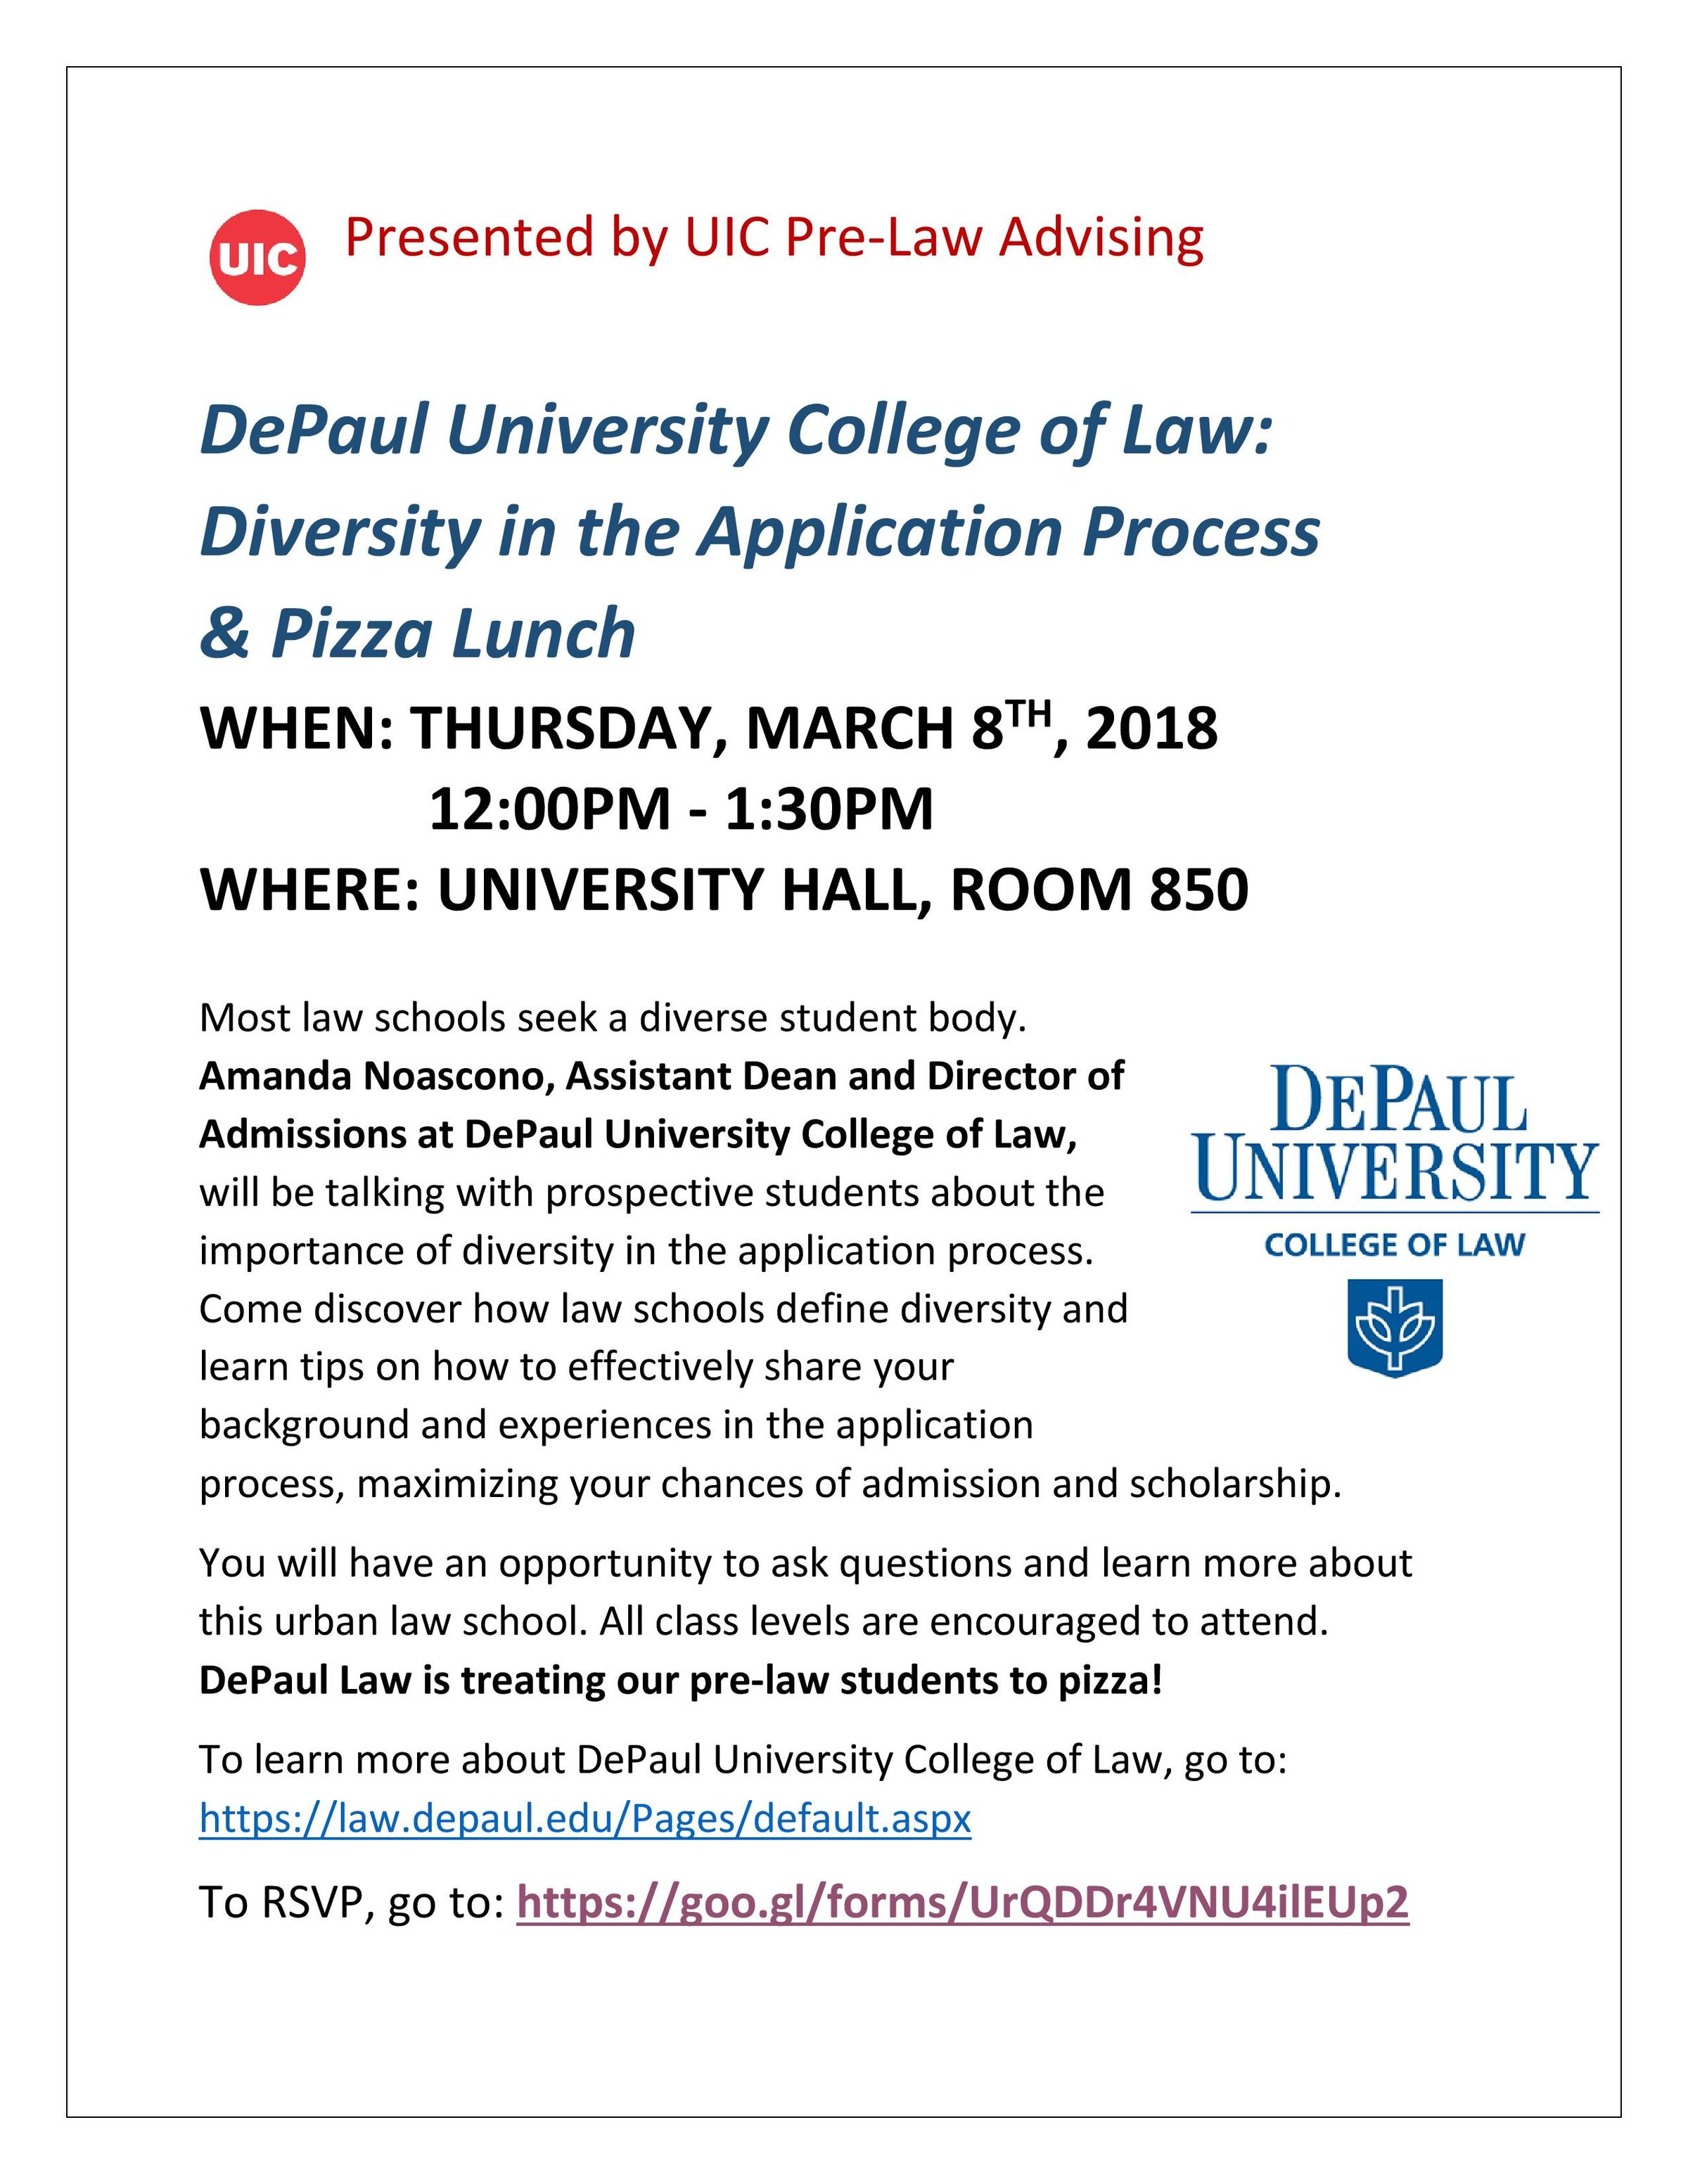 DePaul University College of Law: Diversity in the